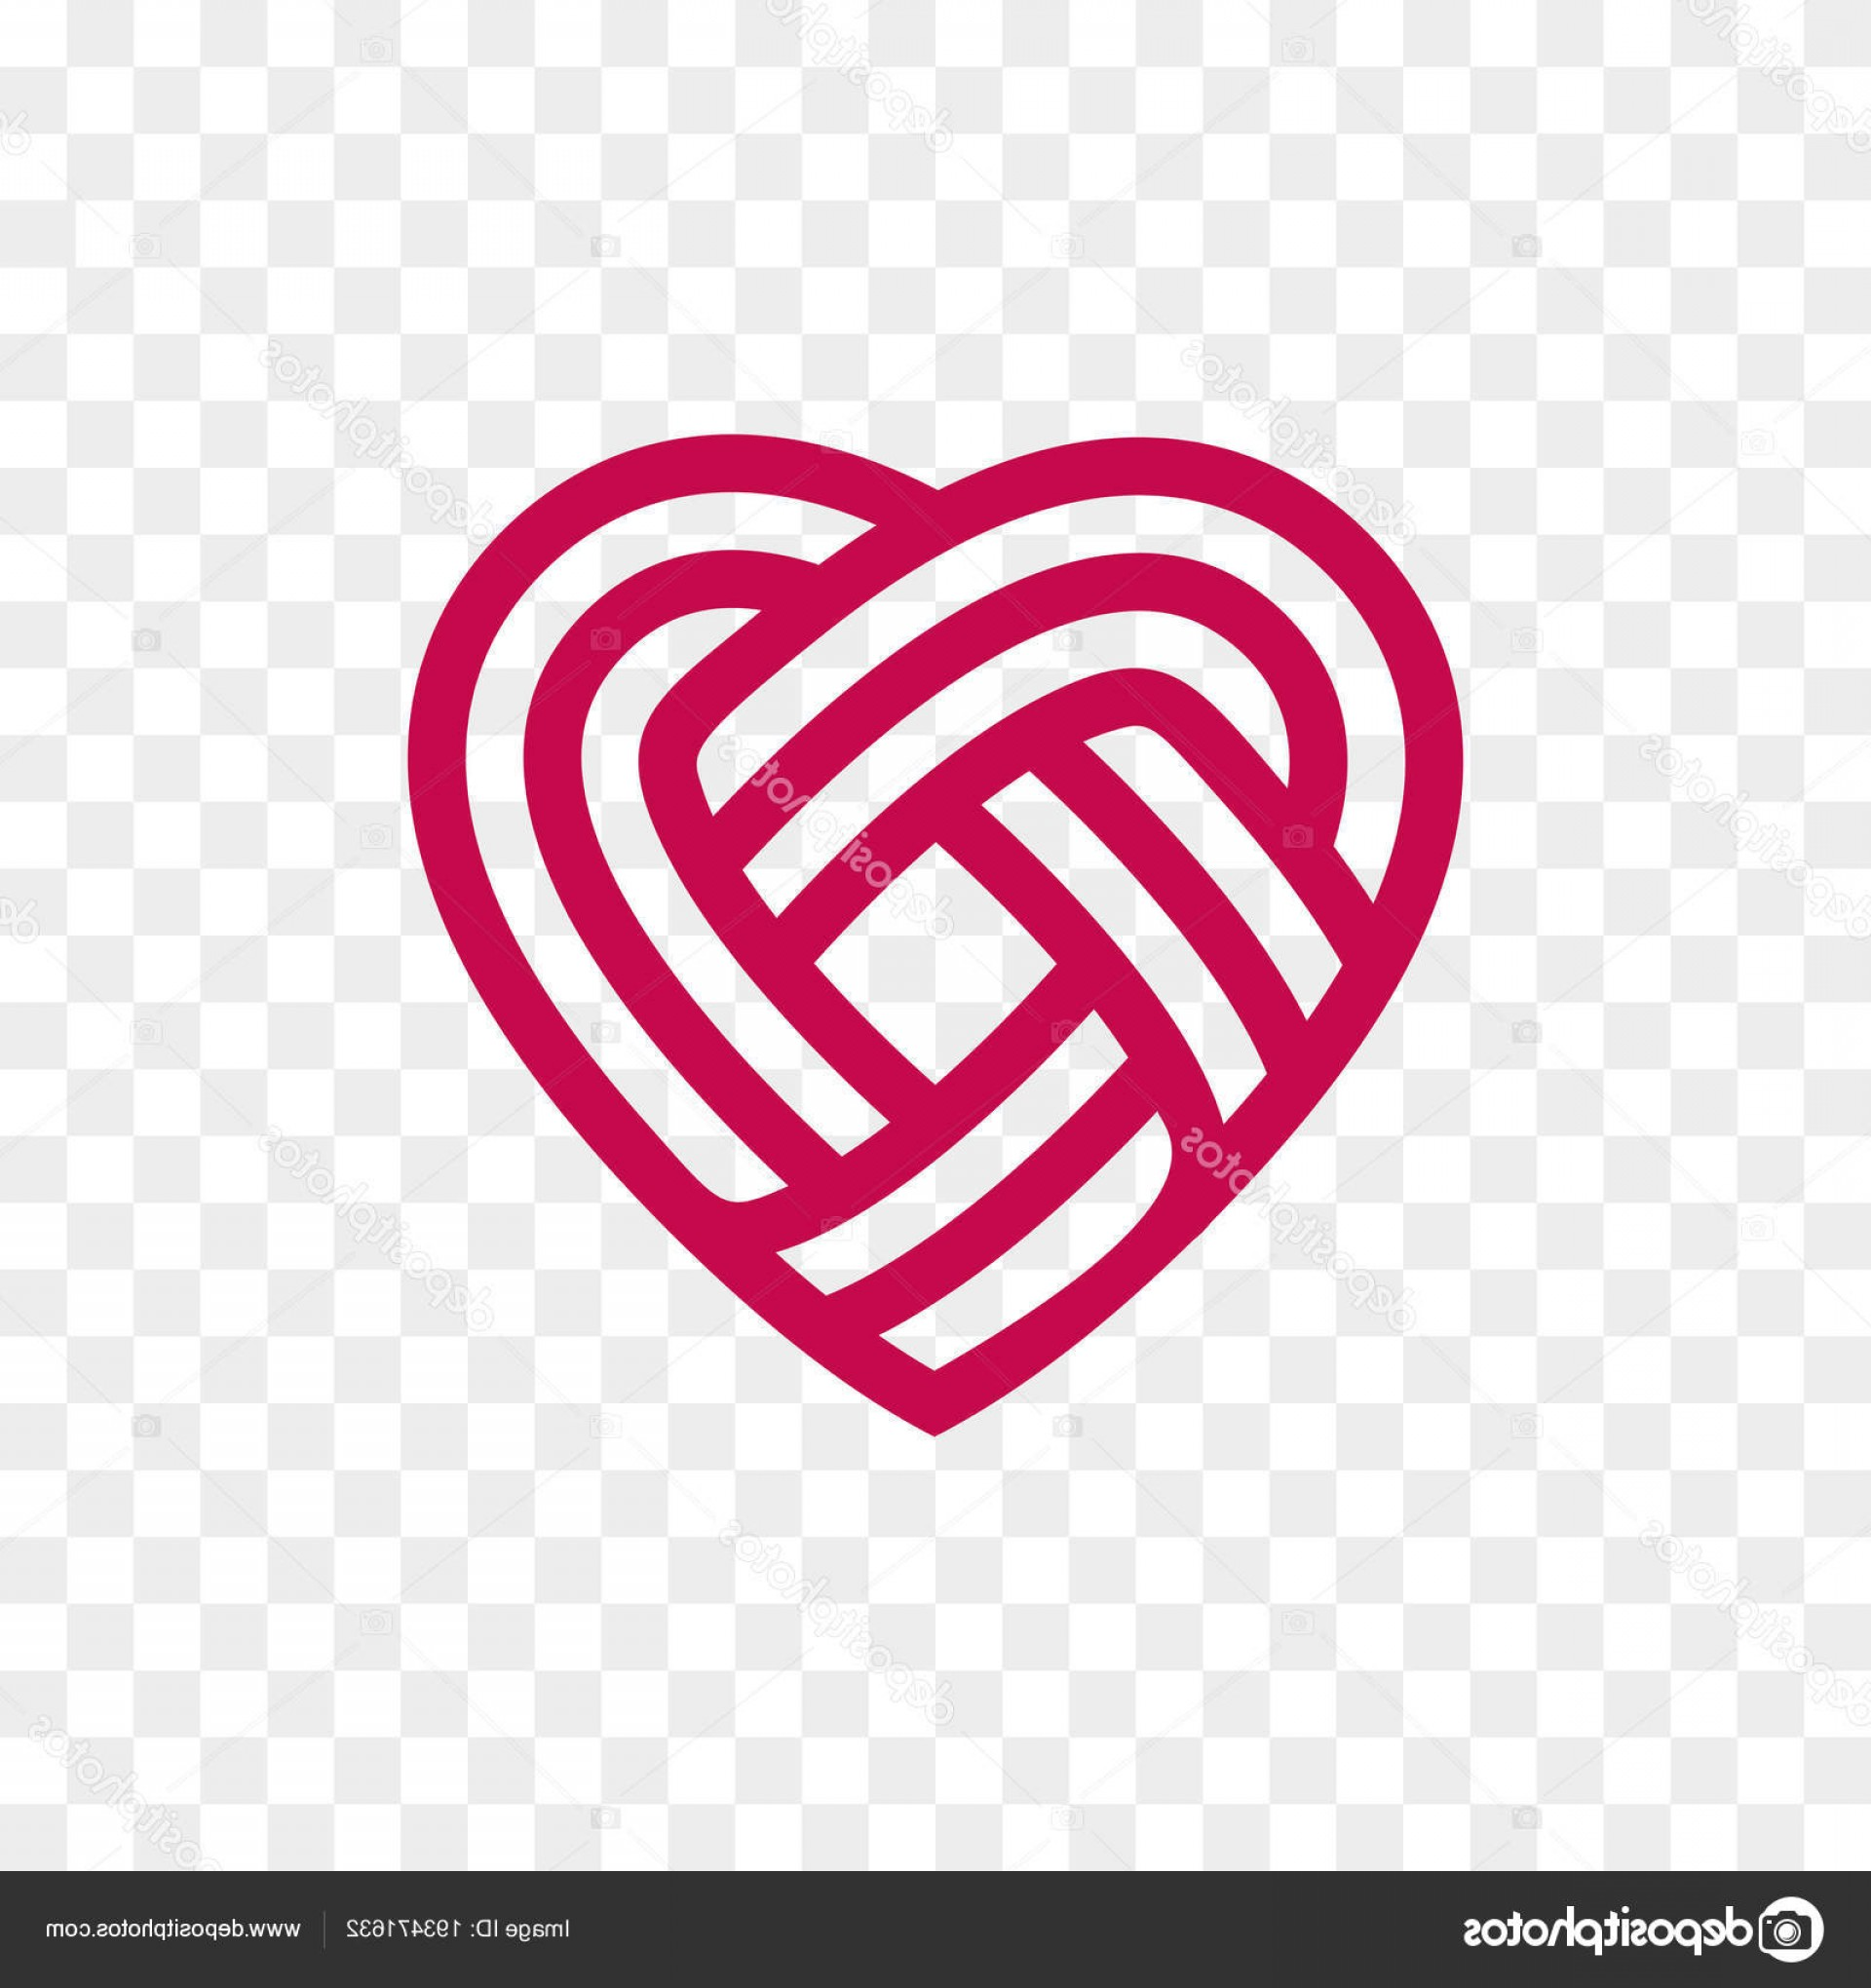 Vector Infinity Symbol Hearts: Stock Illustration Heart Logo Vector Infinity Loop